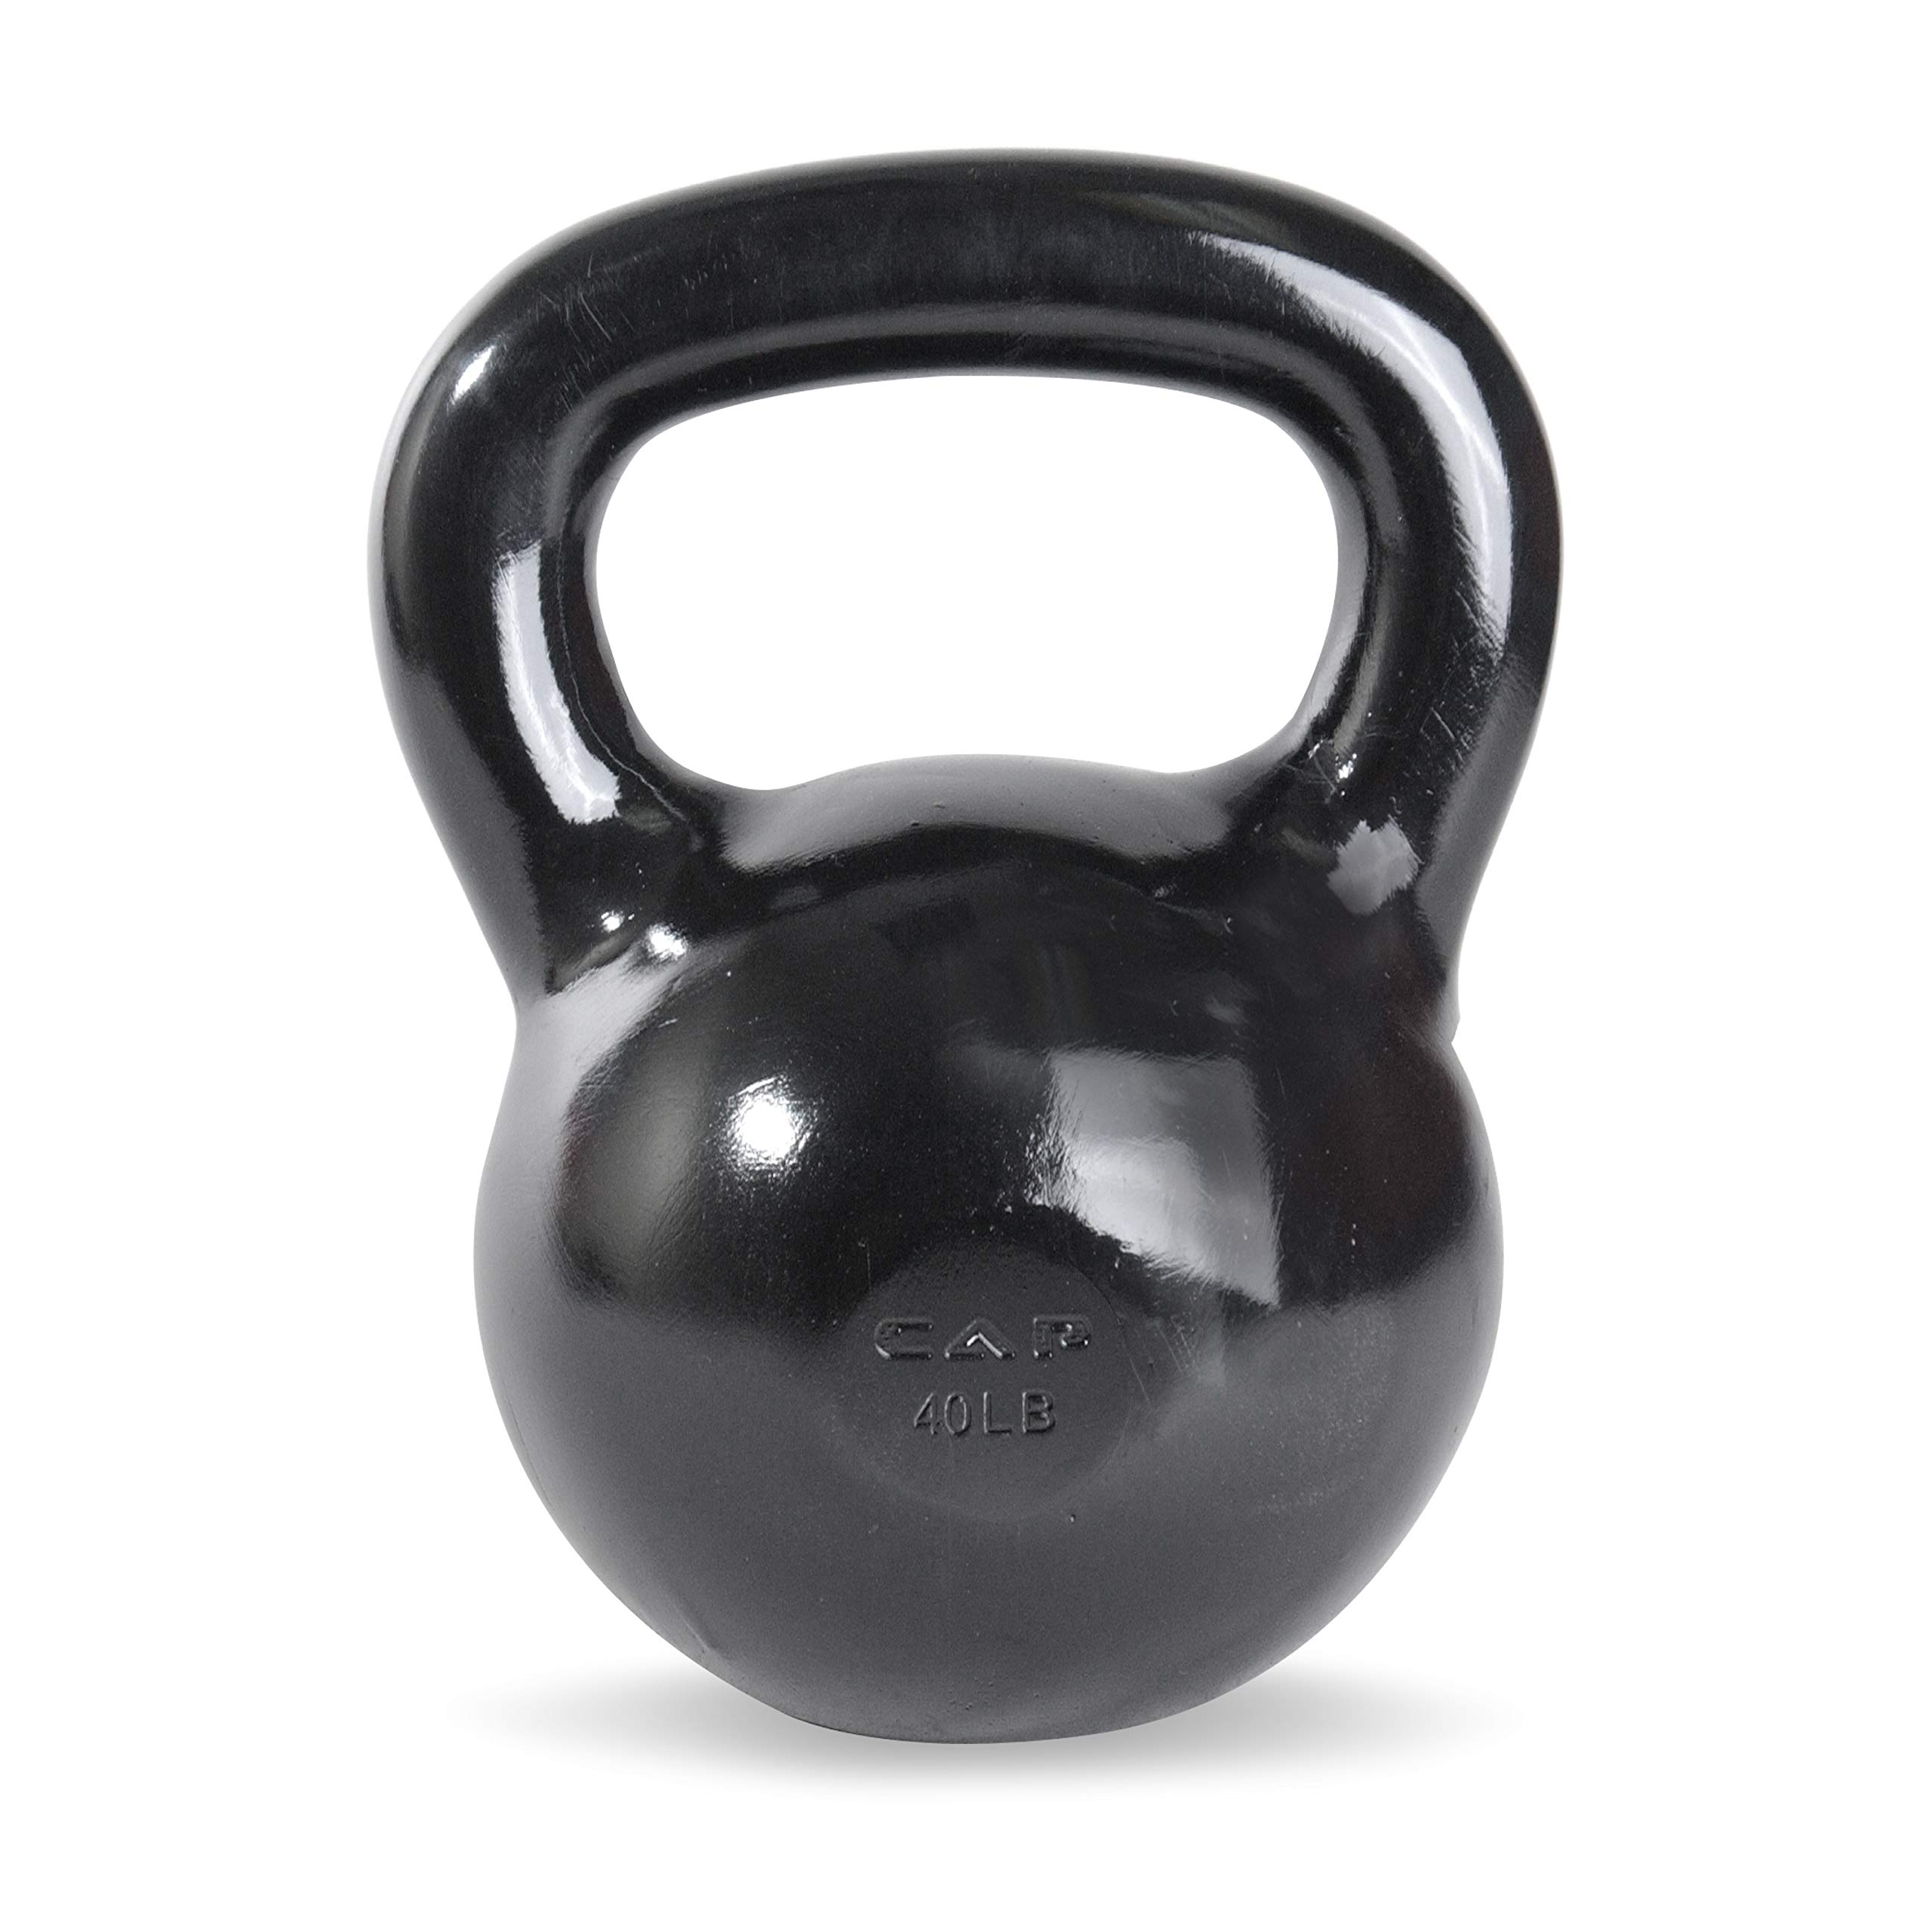 CAP Barbell SDK2-040 Enamel Coated Cast Iron Kettlebell, 40 lb, Black by CAP Barbell (Image #1)